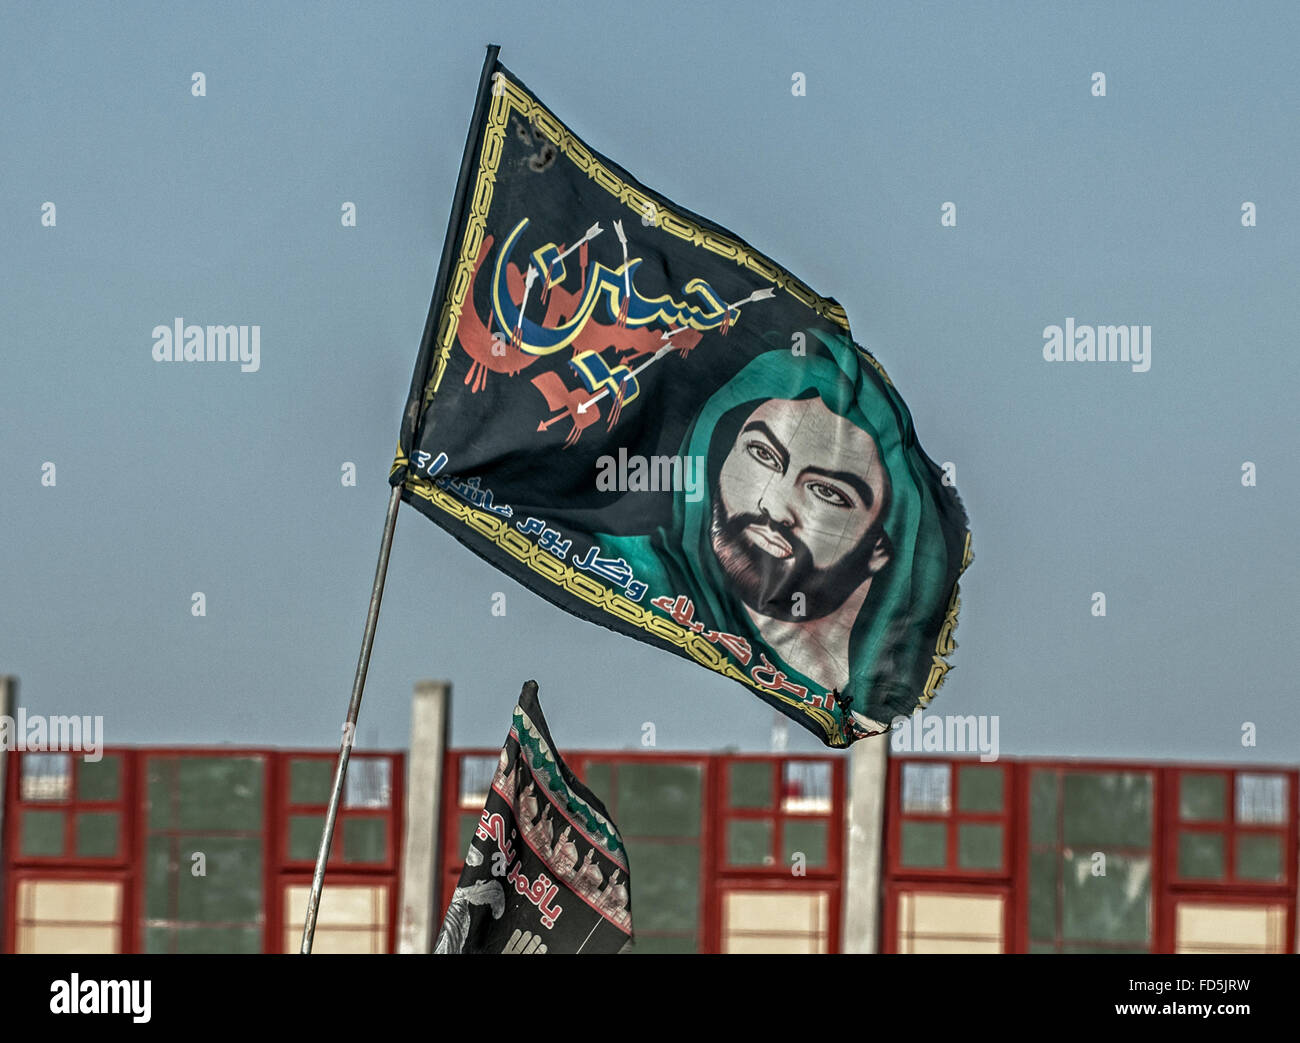 Flag in Basra proclaiming support for Imam Husayn - Stock Image